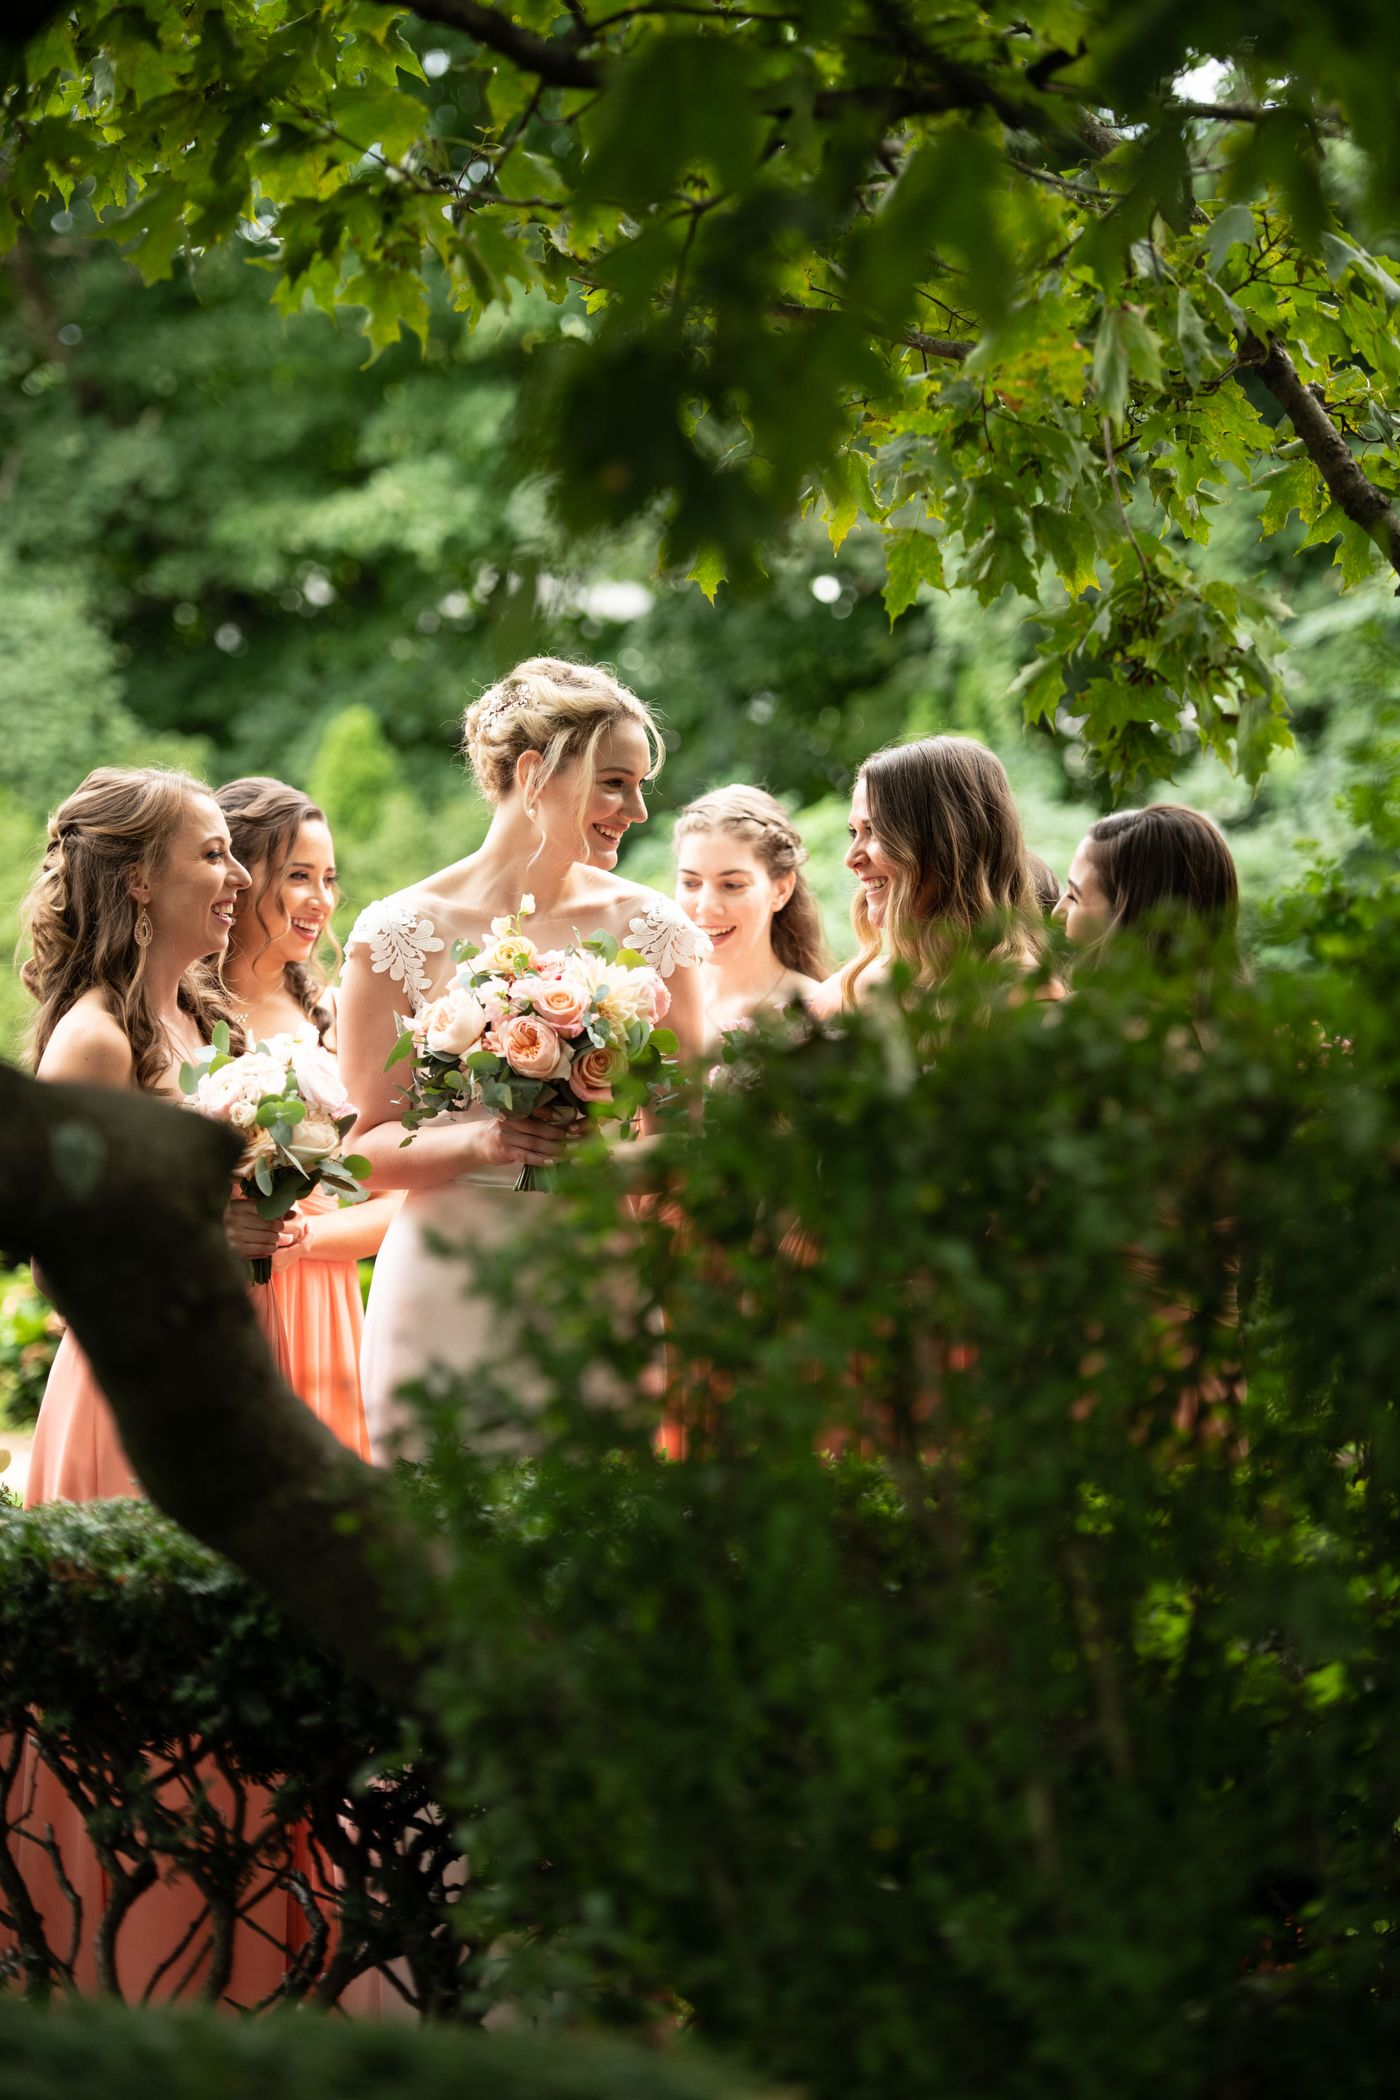 A Bride In The Garden With Her Bridesmaids